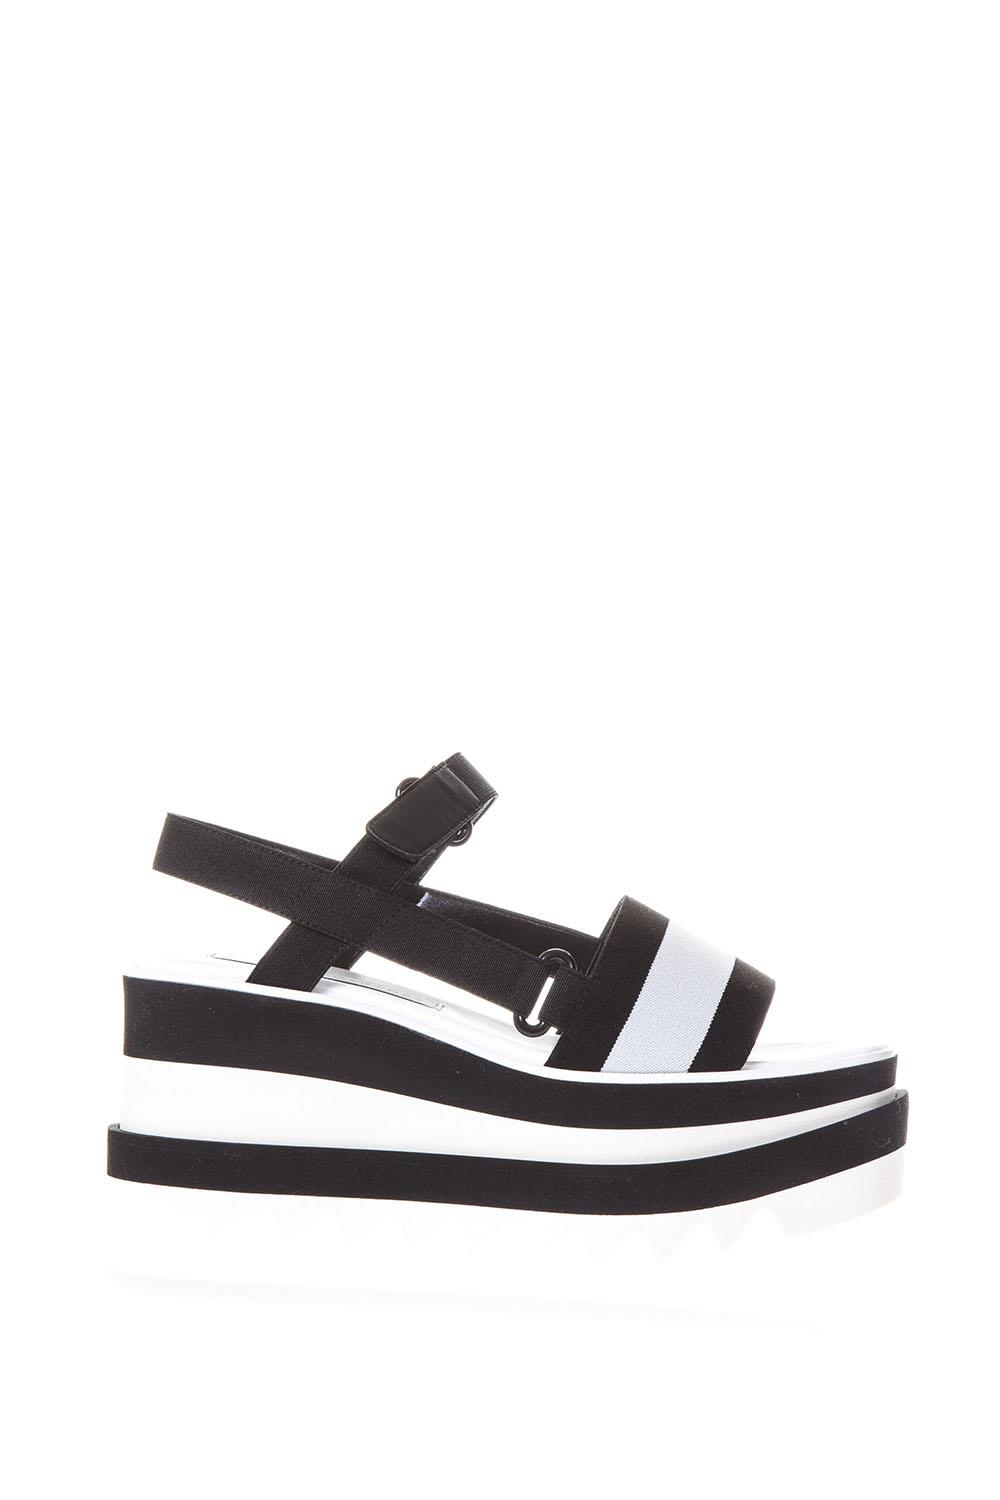 928fadd370f Elyse black and white bands sandals SS2018 - STELLA McCARTNEY - Boutique  Galiano